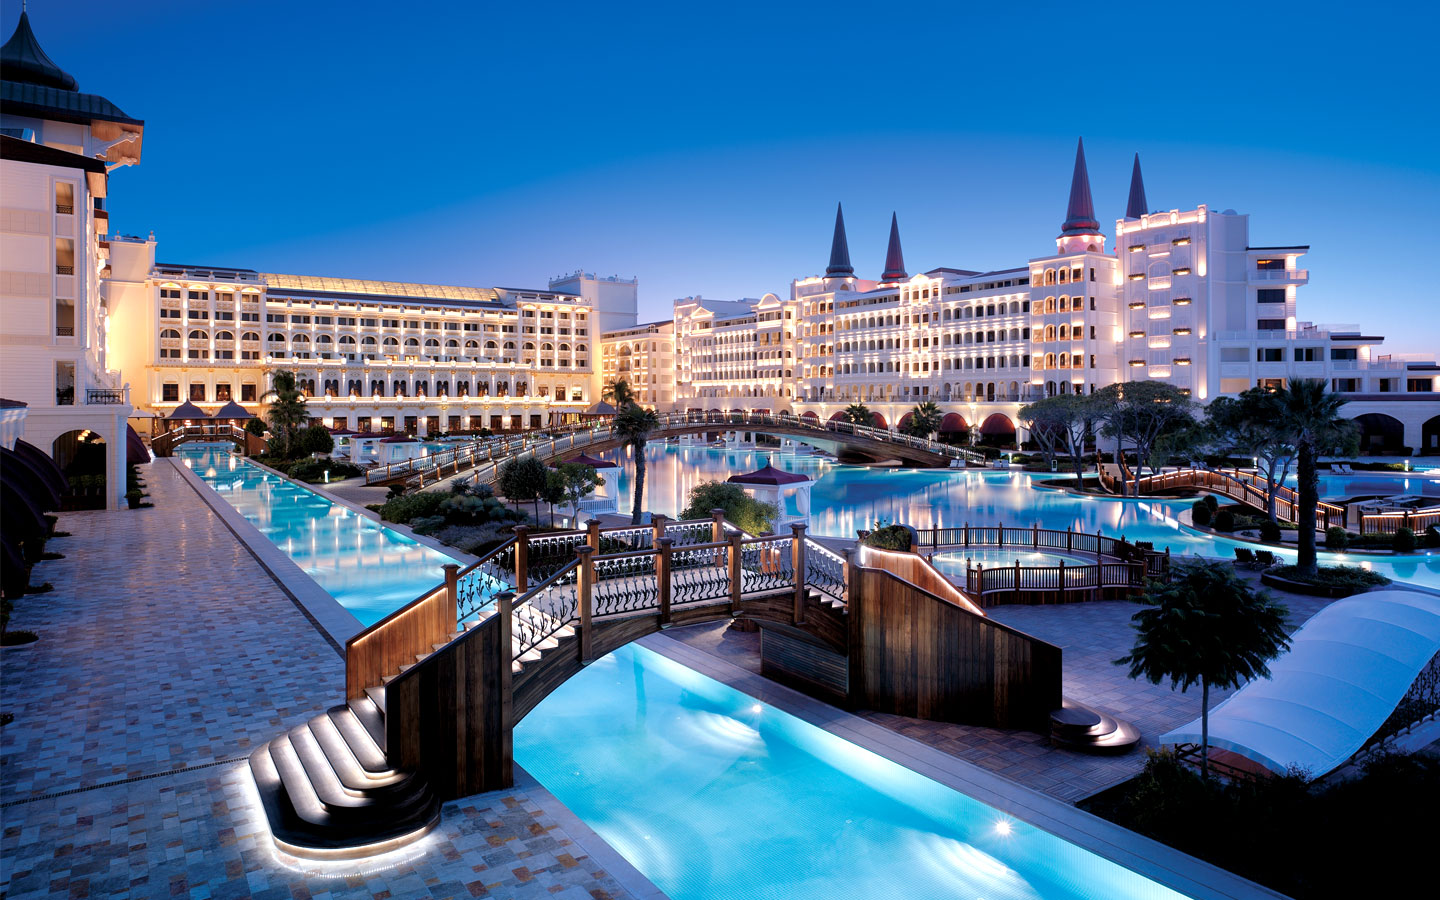 Mardan Palace hotel from hotels around the world